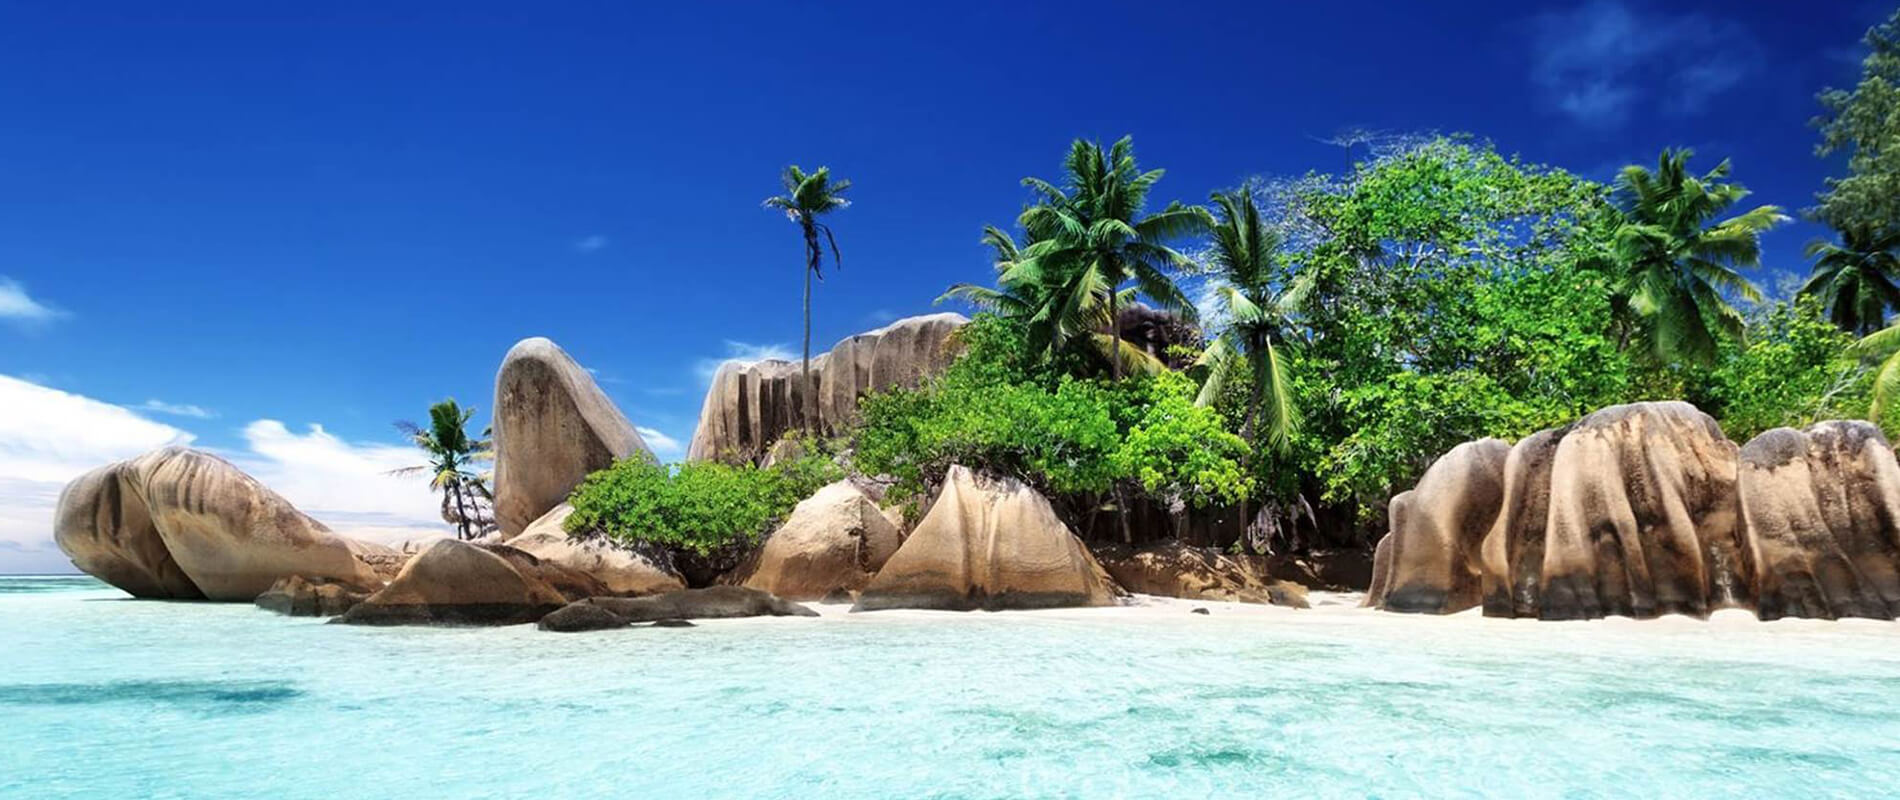 Anse Source d'Argent, the wonderful beach of the Seychelles